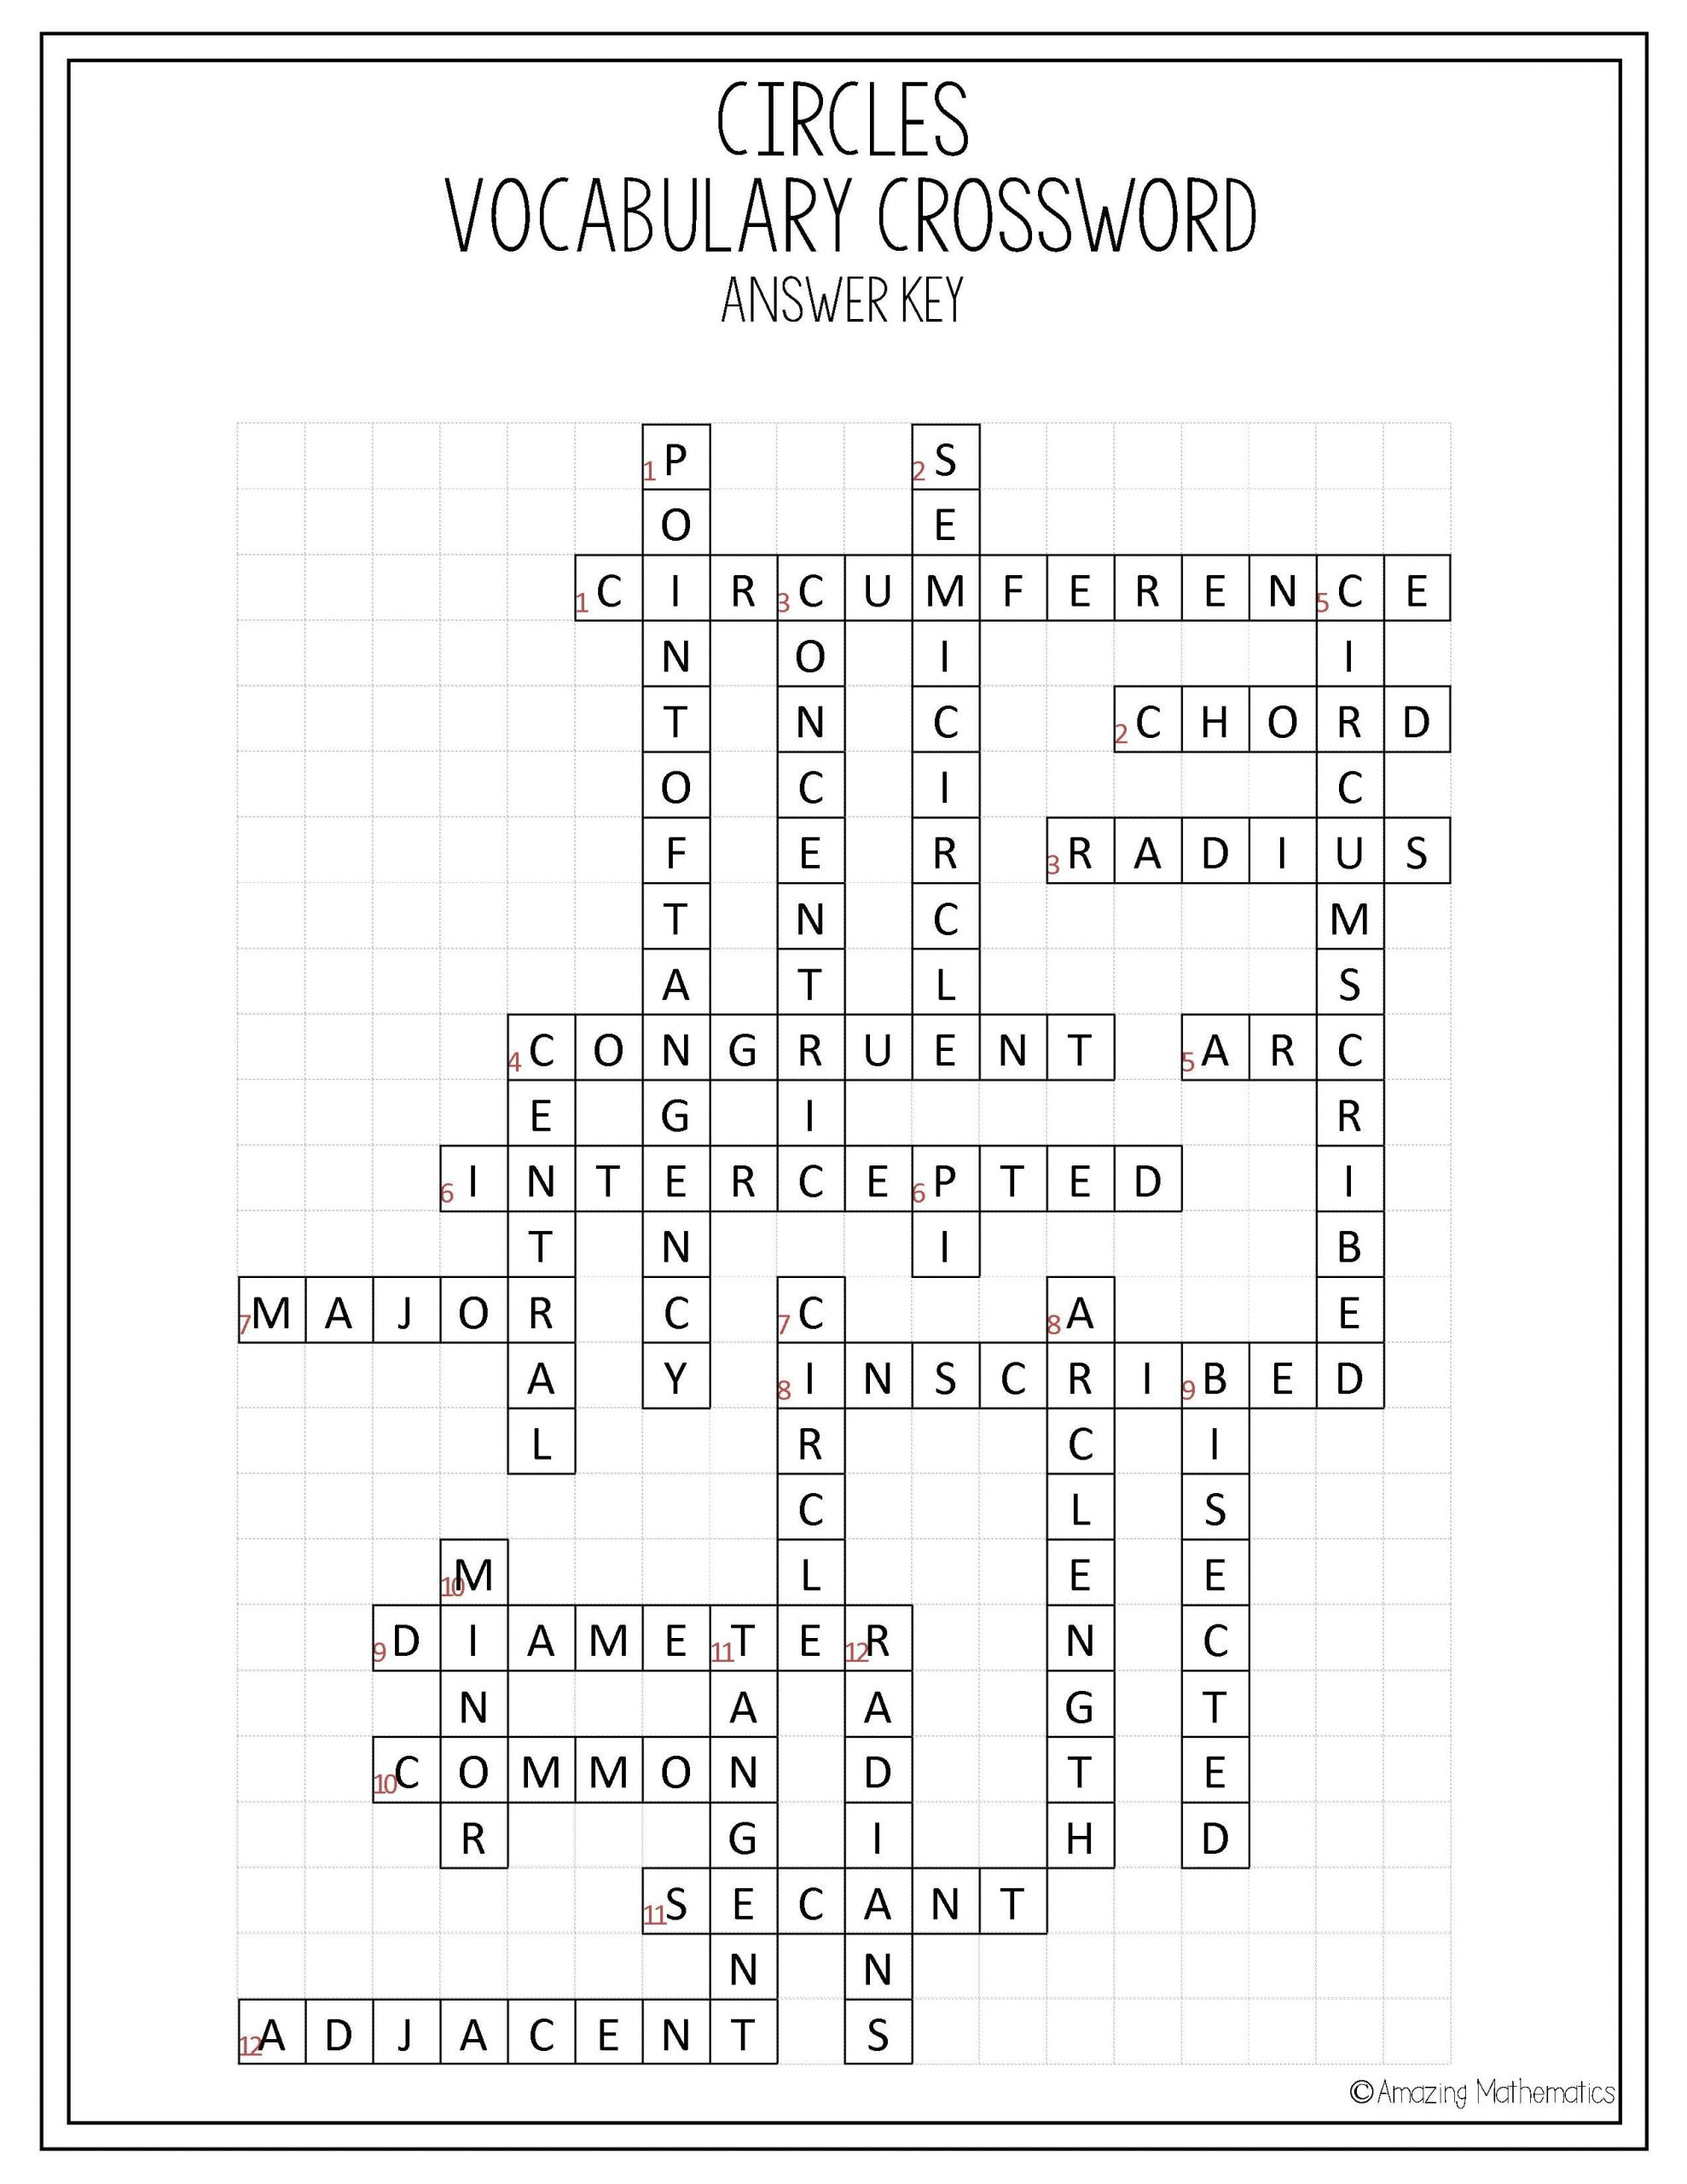 8th Grade Math Vocabulary Crossword Circles Vocabulary Crossword